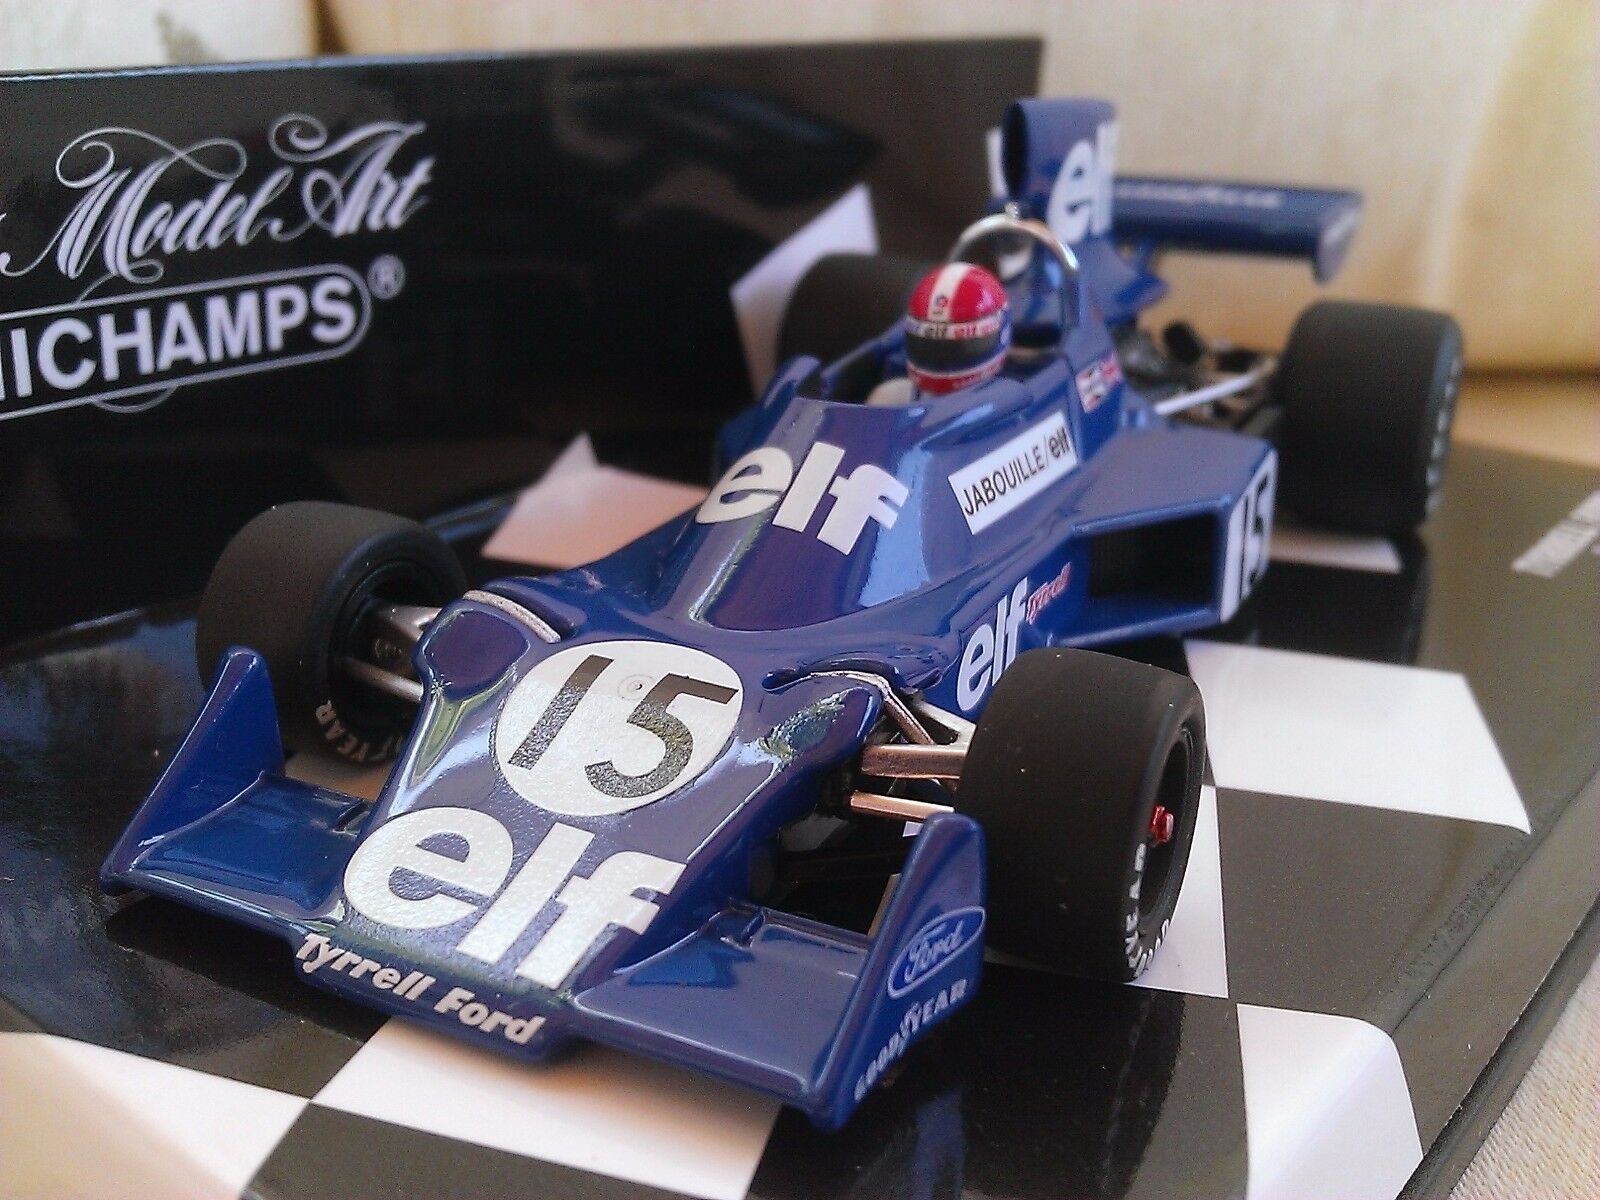 Tyrrell Ford 007 Jabouille 1975 Diecast Model F1 Car 1 43 Minichamps